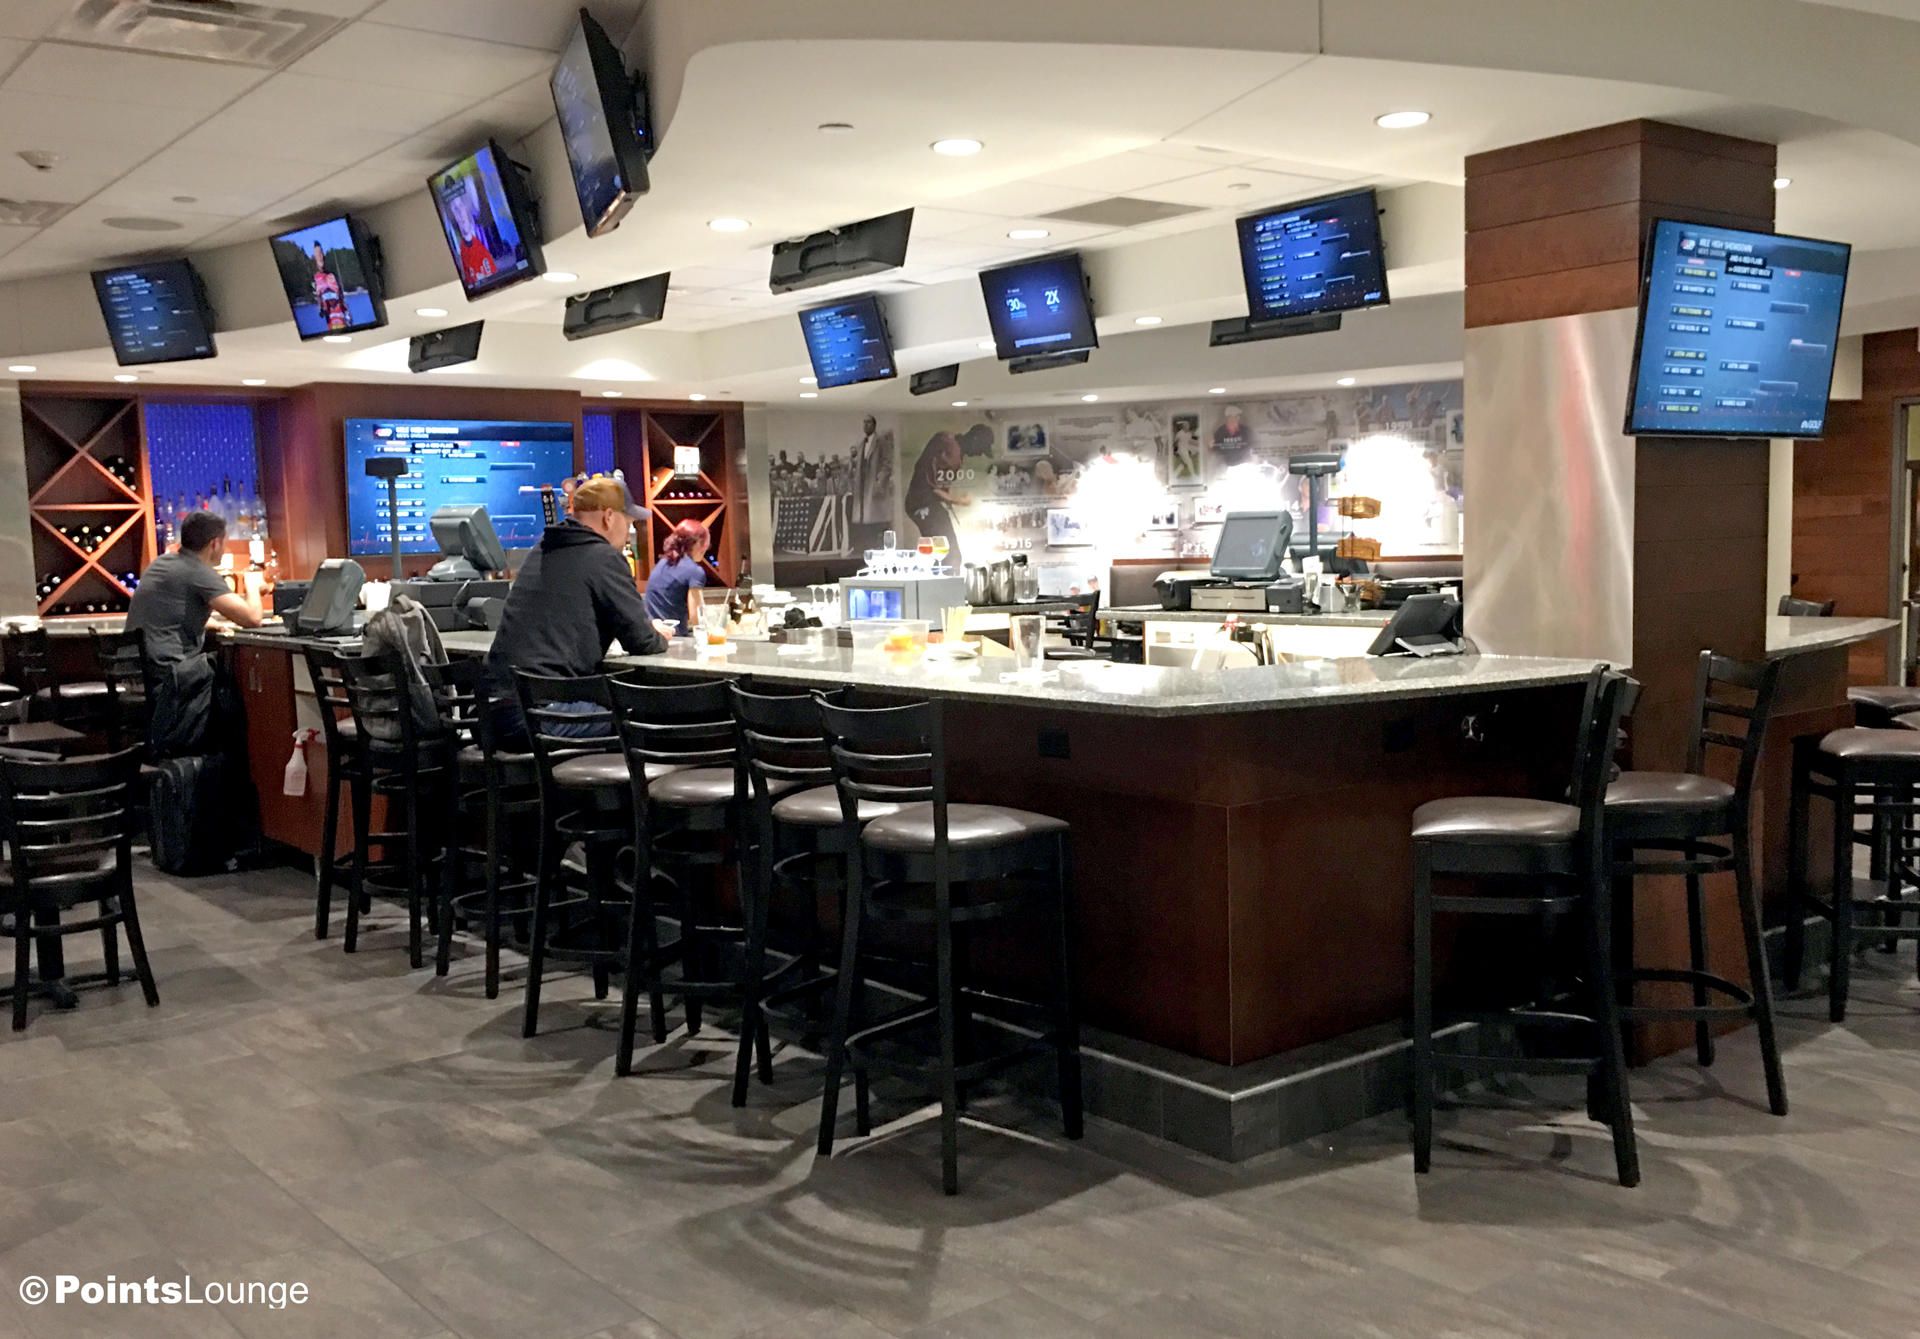 A view of Champions' Grille and bar at the PGA MSP golf-themed airport lounge at the Minneapolis-St. Paul International Airport. One of the ways the lounge can be accessed is with Priority Pass membership. (Click for a larger image.)